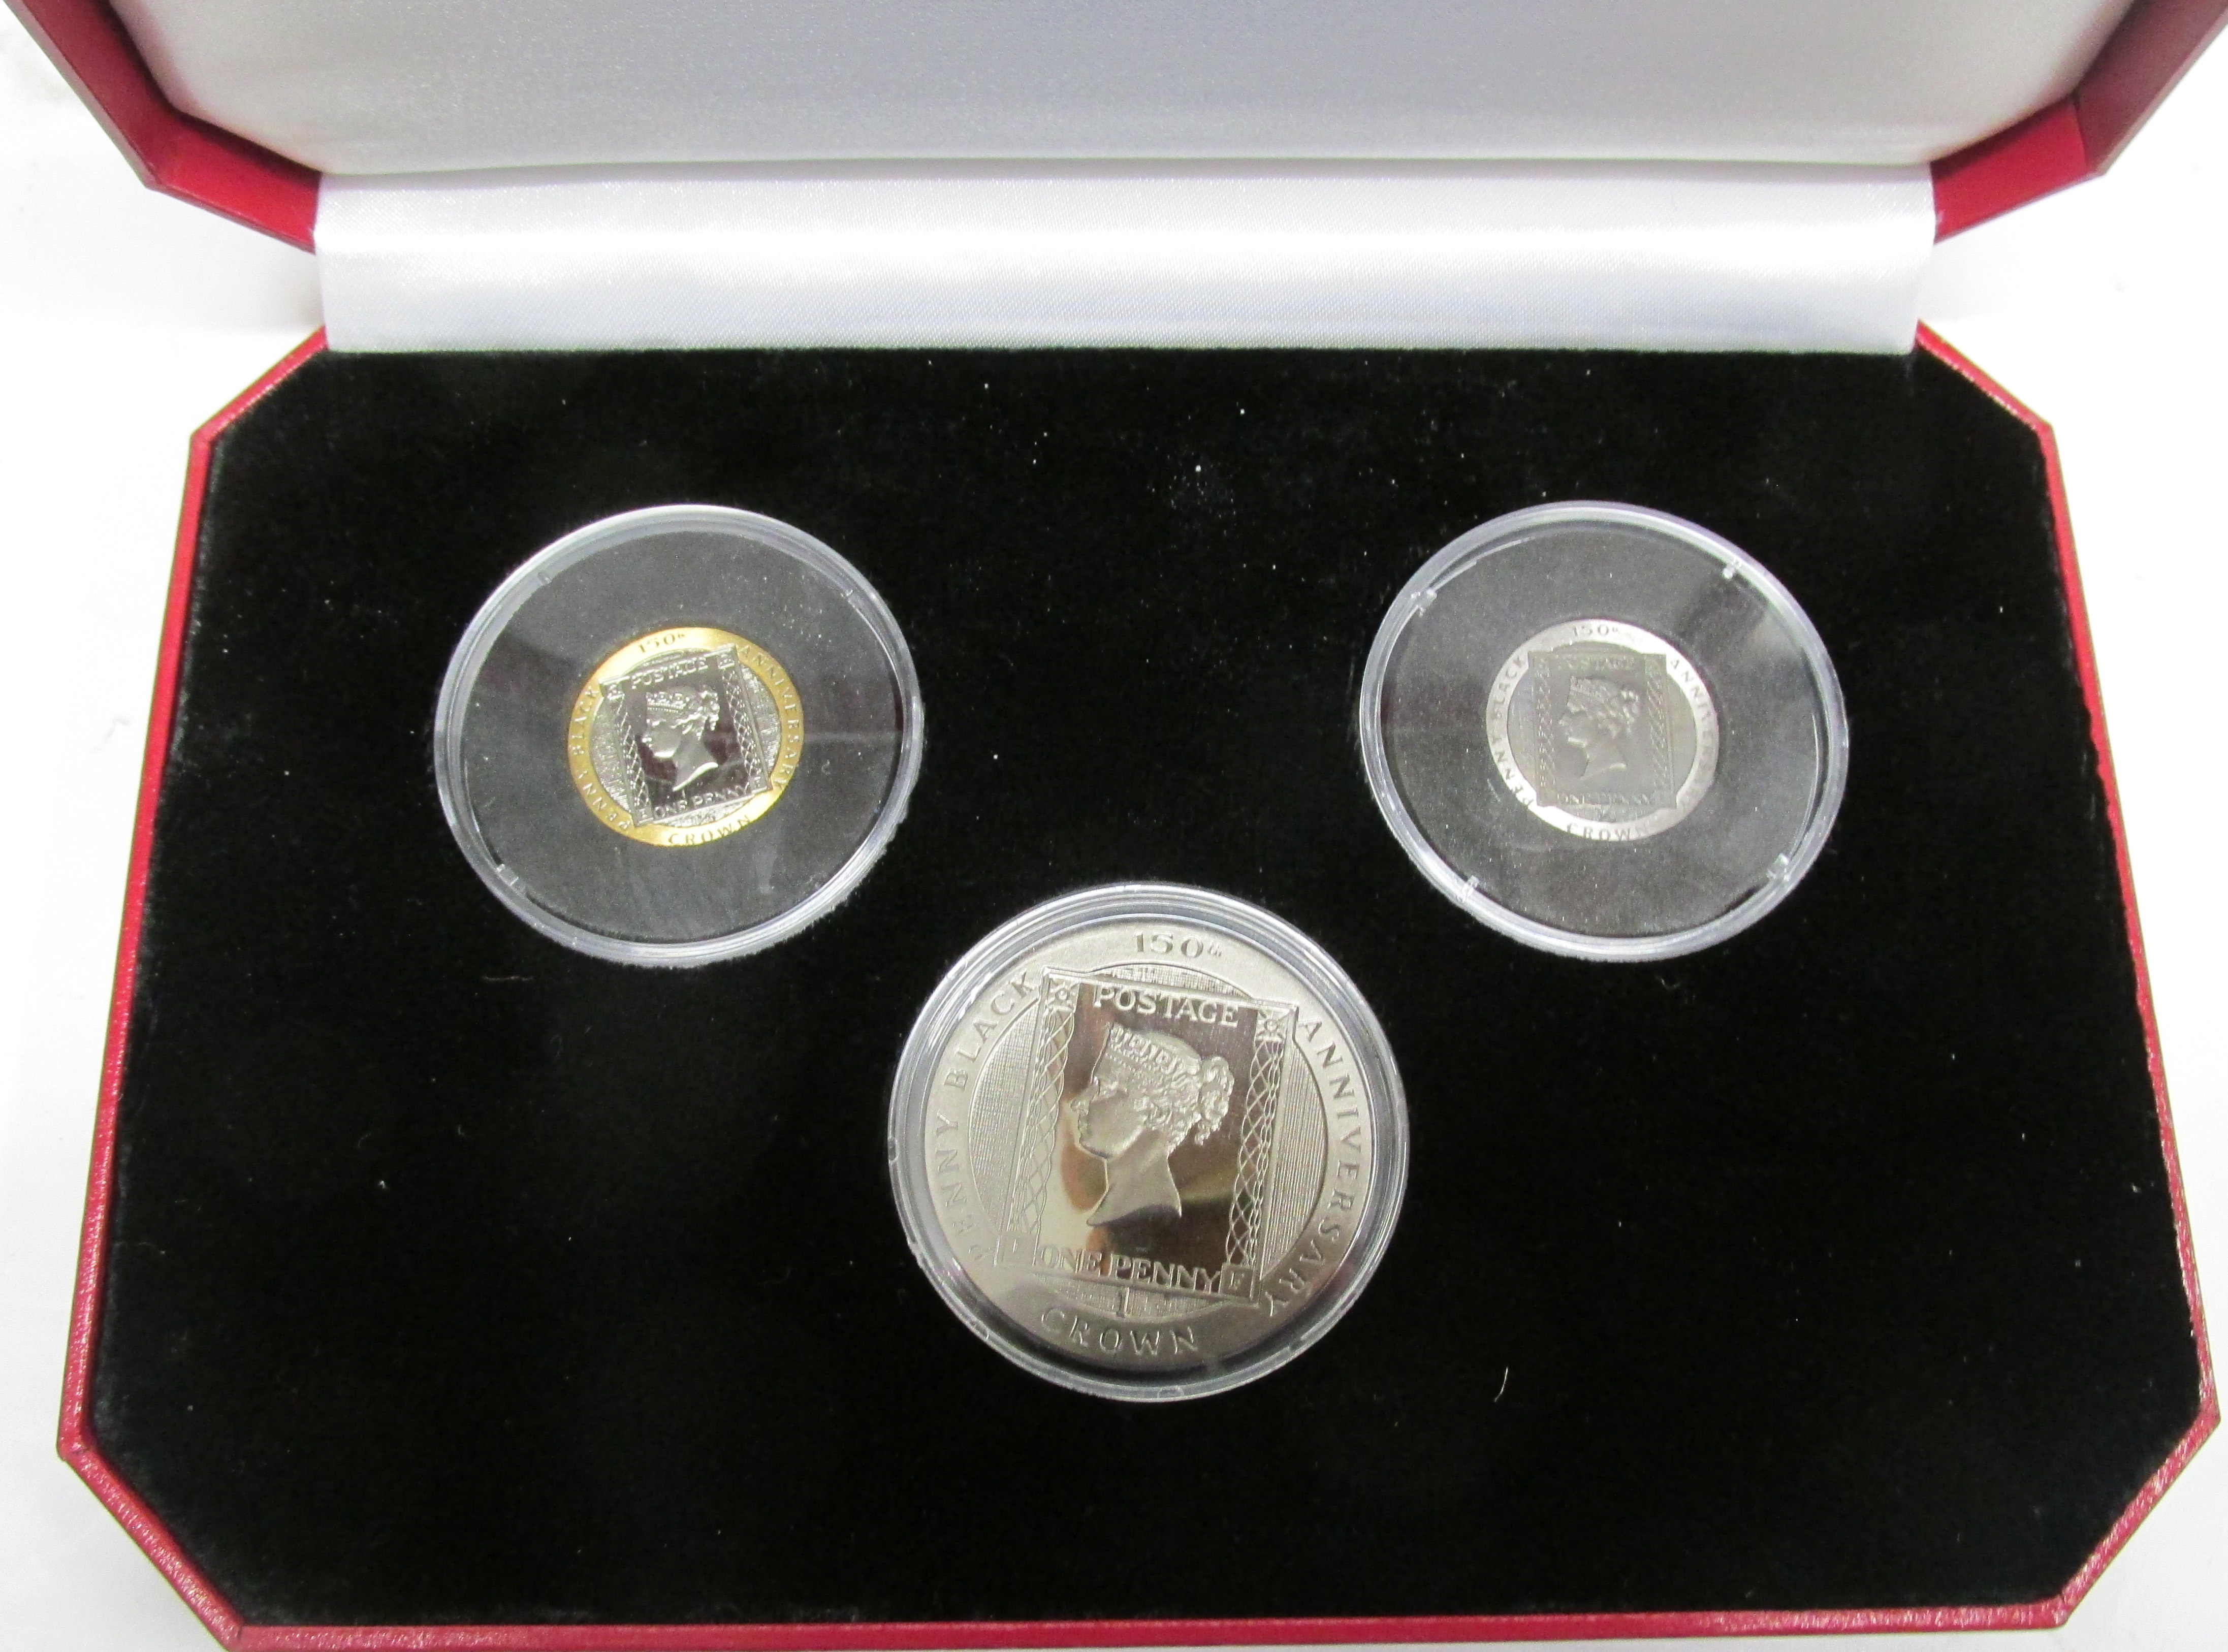 Pobjoy Mint Penny Black Tri-Metal 3 Coin Proof Set with COA and Booklet